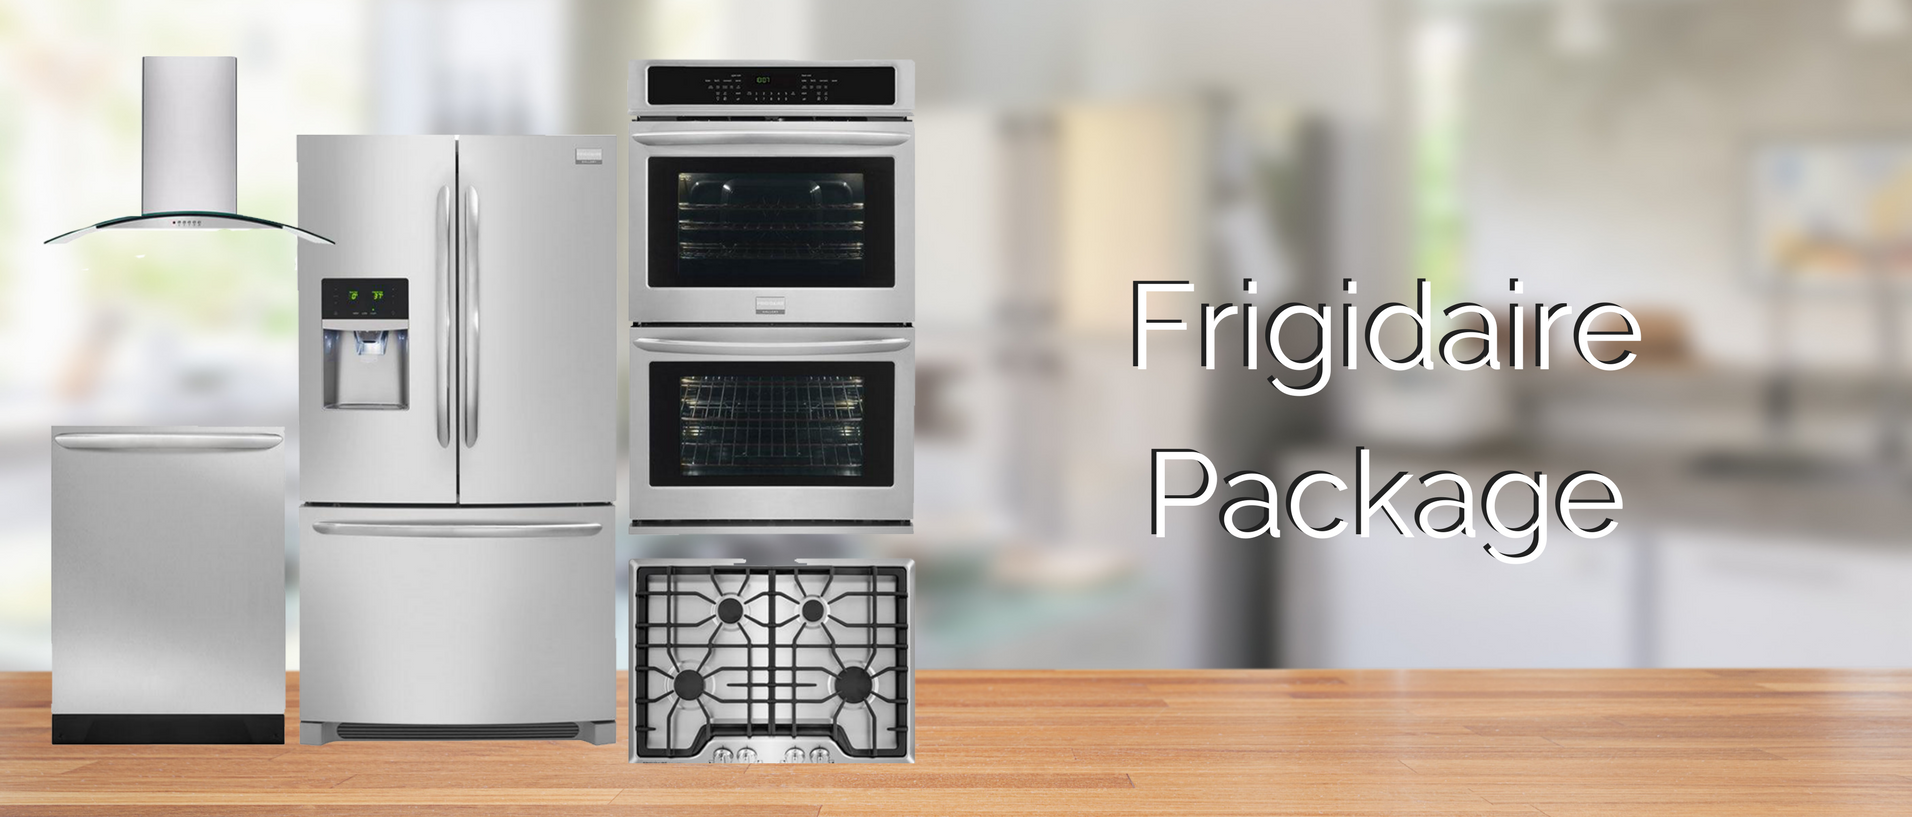 Frigidaire Is A Leading Brand That Offers A Full Range Of Energy Efficient,  High Quality Kitchen And Laundry Appliances. They Are Highly Known For  Their ...